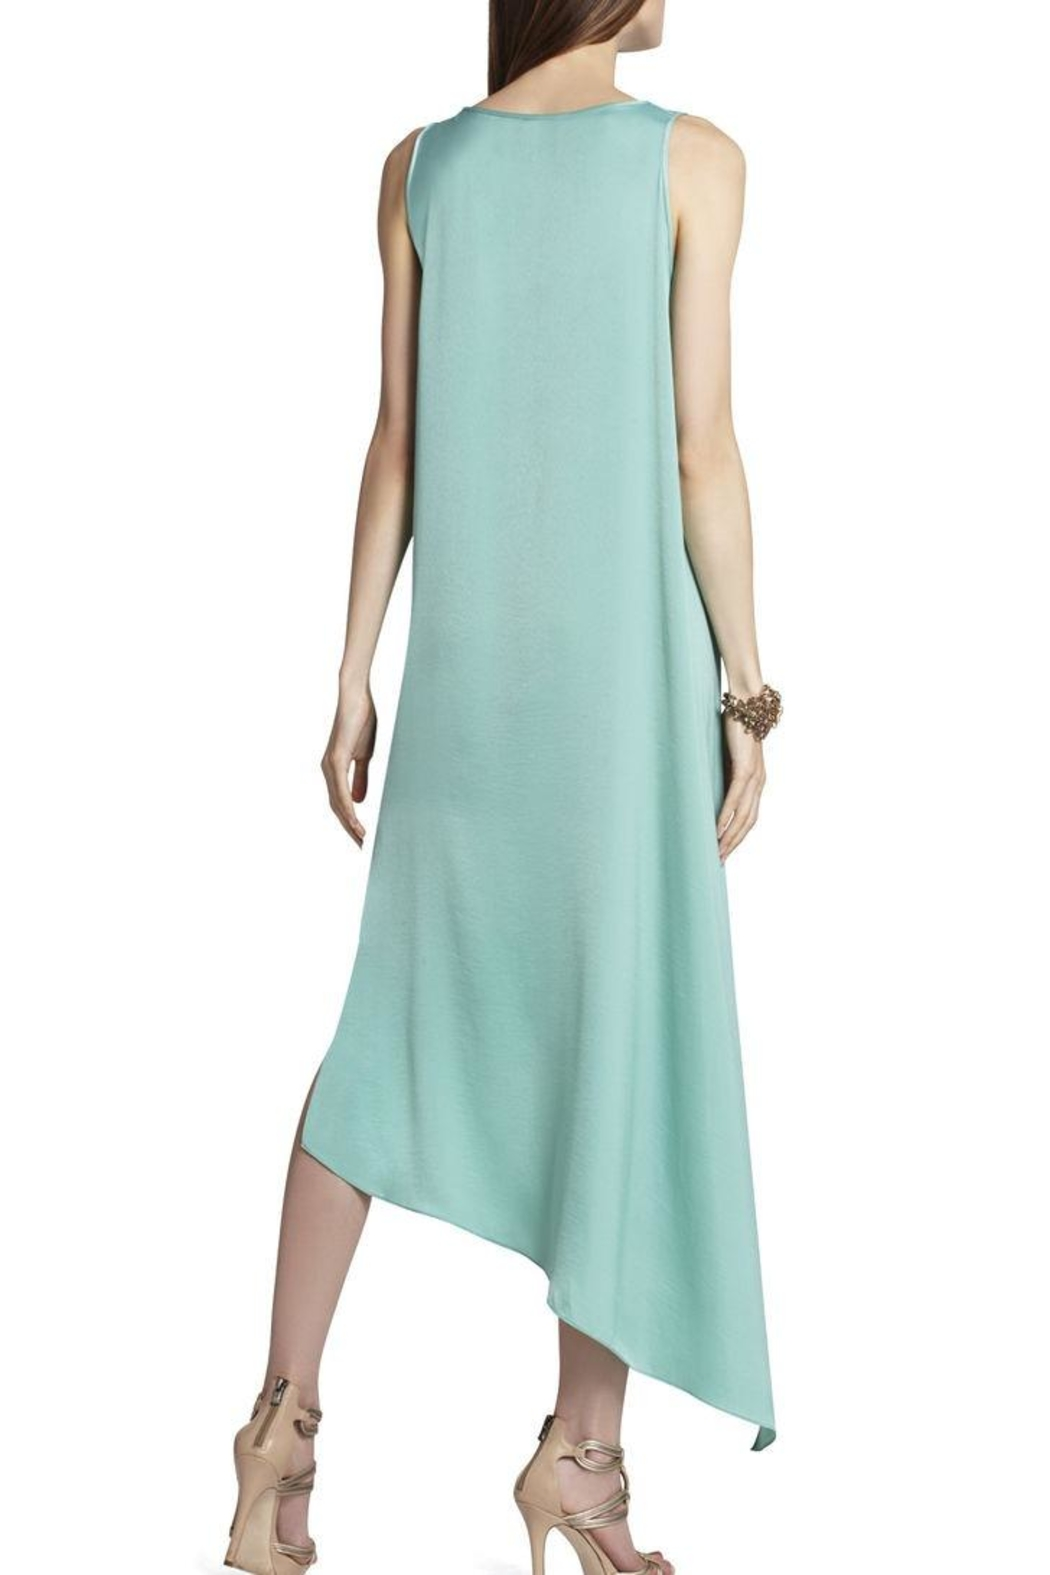 BCBG Max Azria Reese Dress - Side Cropped Image